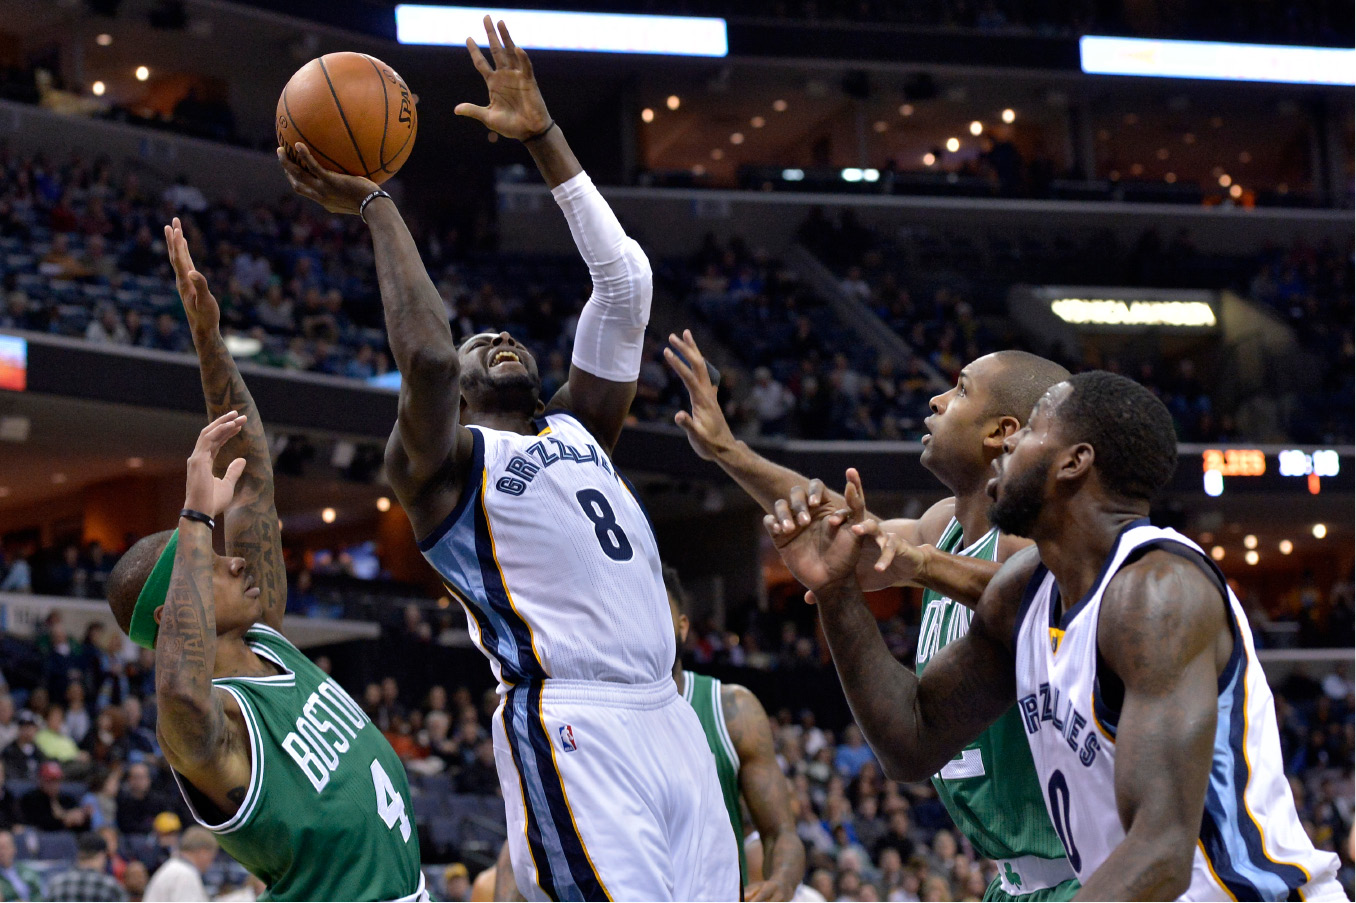 Memphis Grizzlies forward James Ennis (8) shoots between Boston Celtics guard Isaiah Thomas (4), Celtics center Al Horford, second from right, and Grizzlies forward JaMychal Green (0) in the first half of an NBA basketball game, Tuesday, Dec. 20, 2016, in Memphis, Tenn. (AP Photo/Brandon Dill)